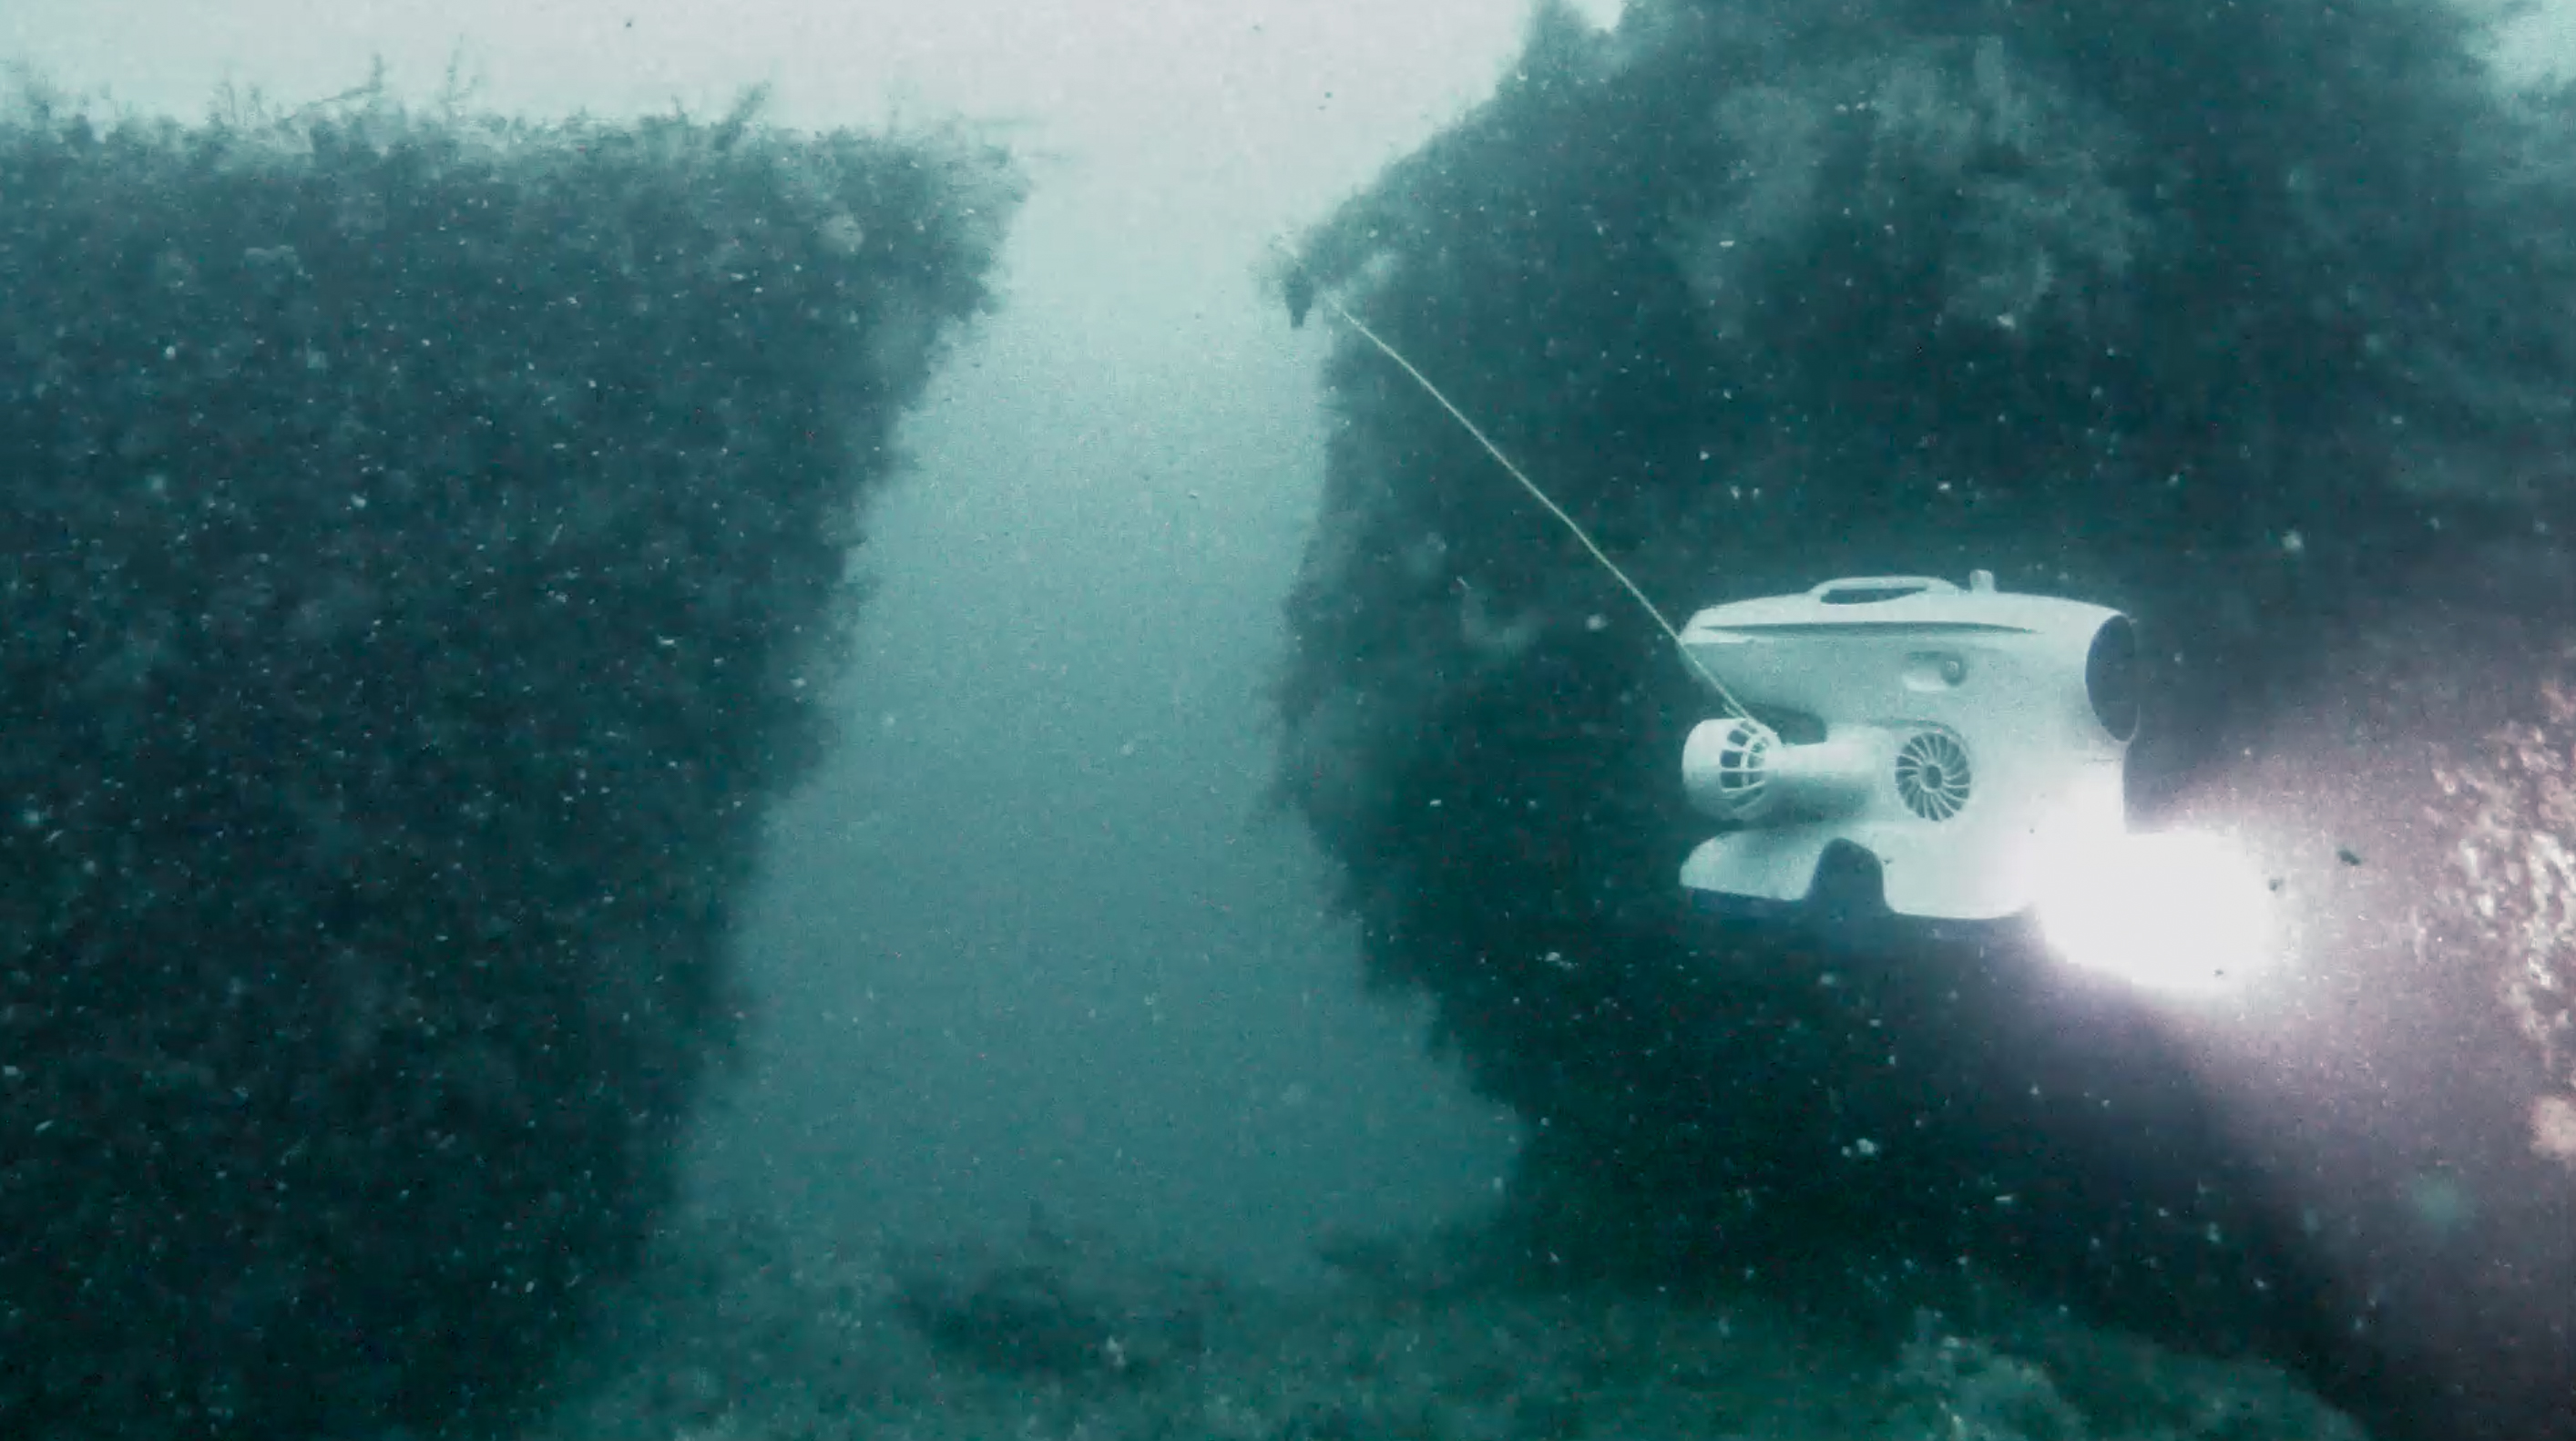 Image of the Figaro wreck from the Blueye Pioneer underwater drone